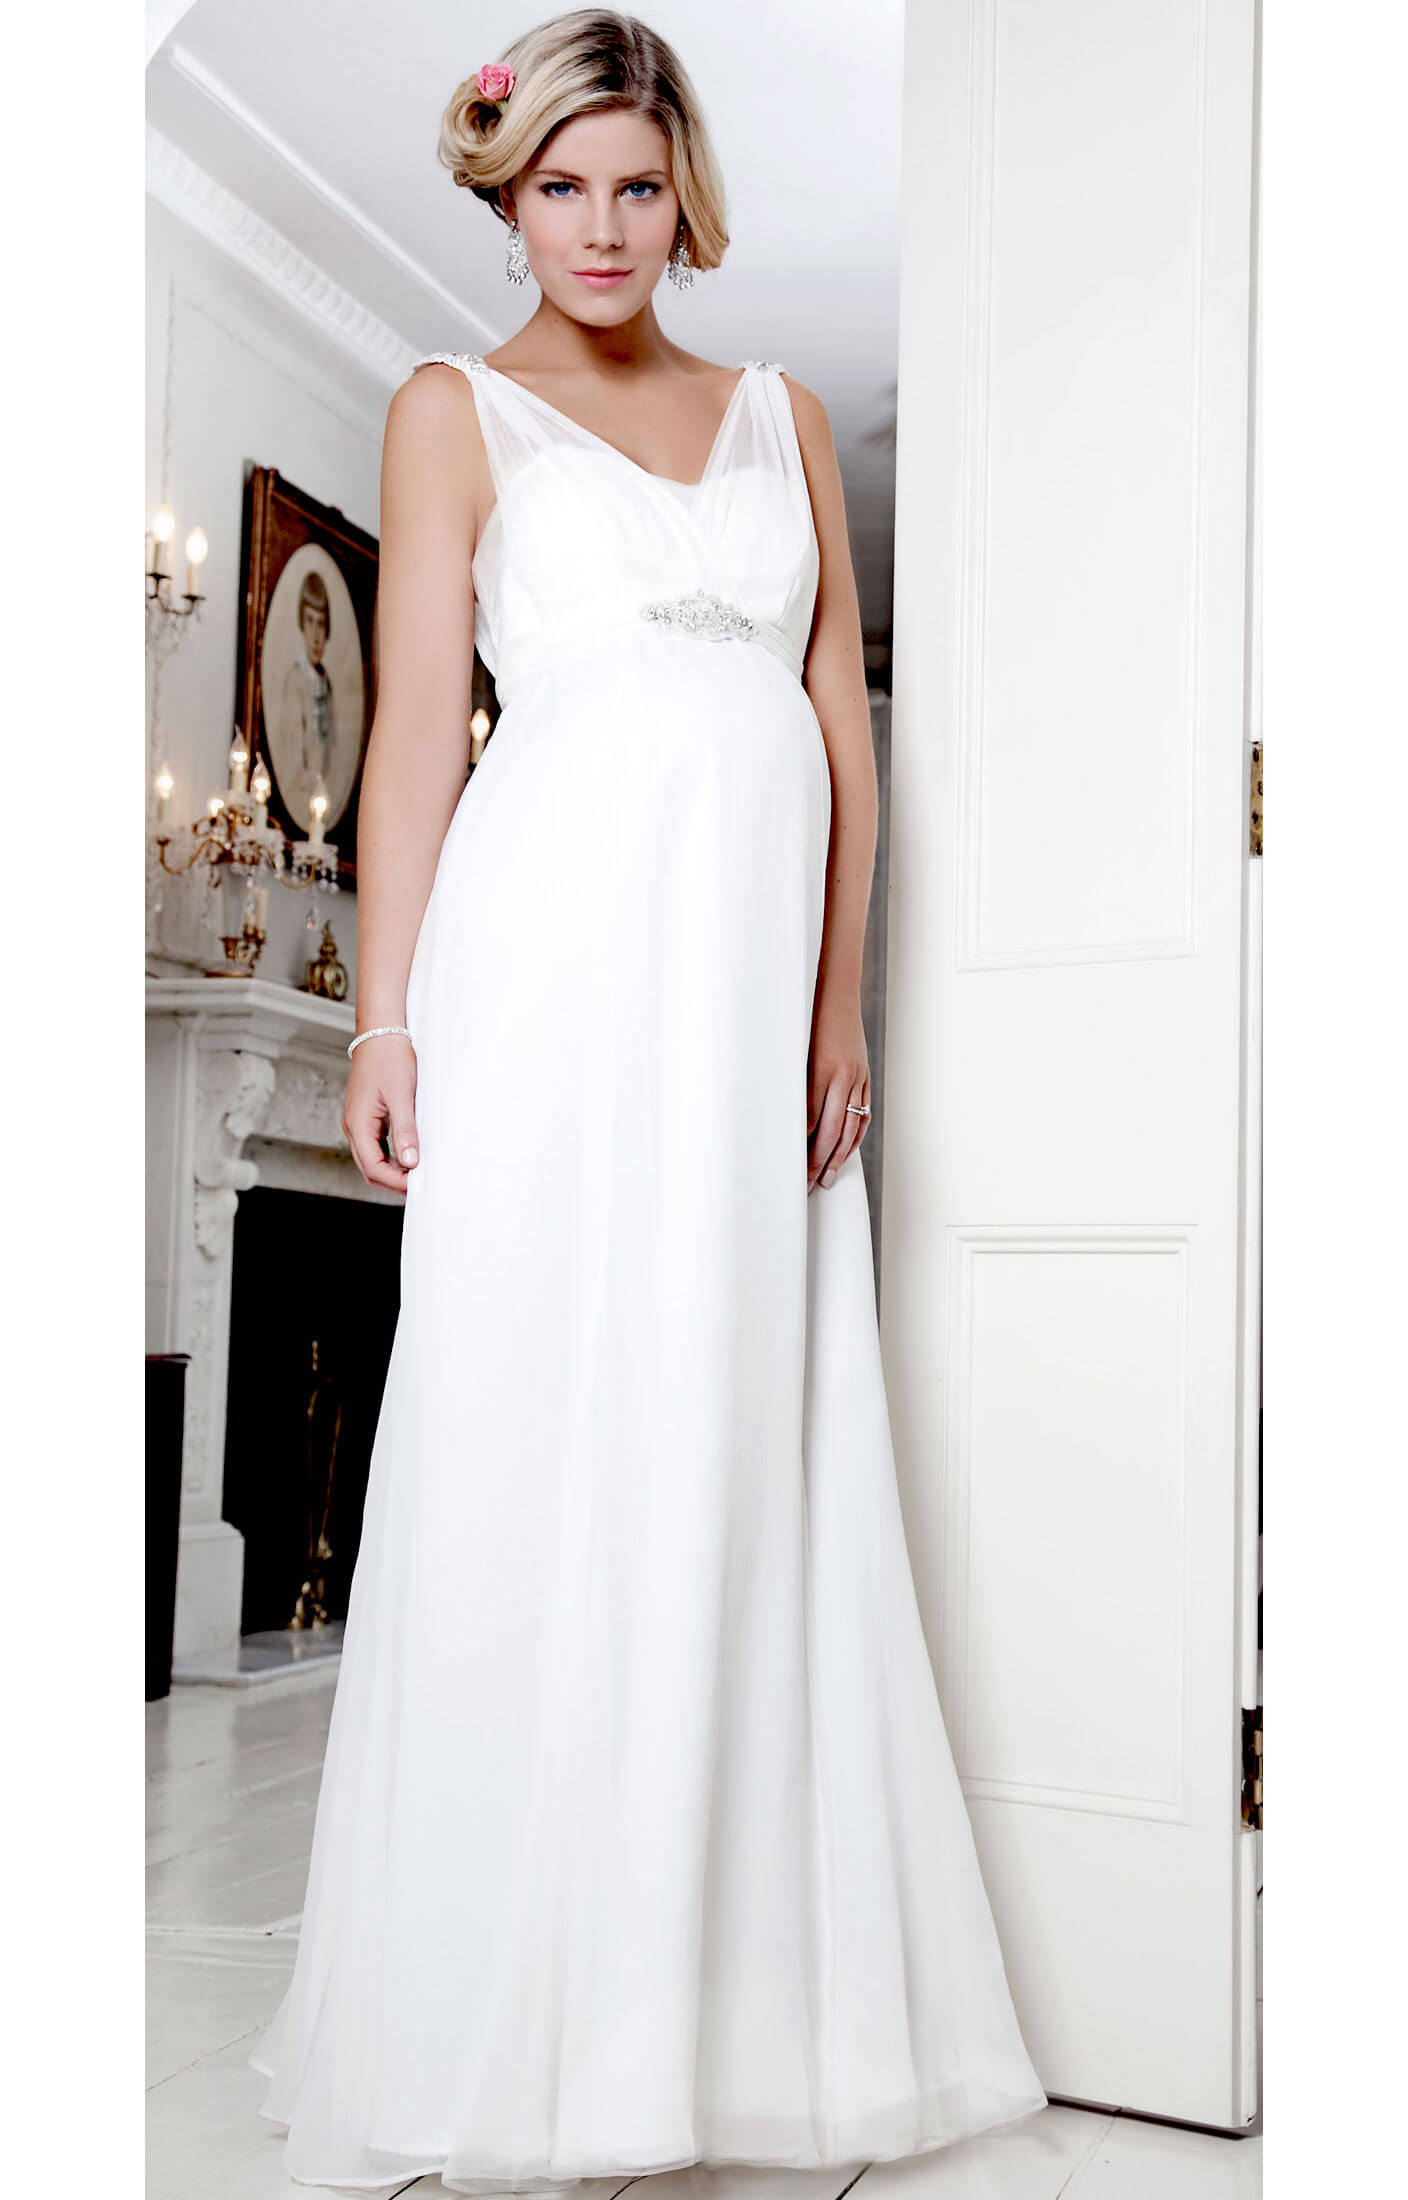 Maternity wedding dresses under 100 dollars for Maternity wedding dresses under 100